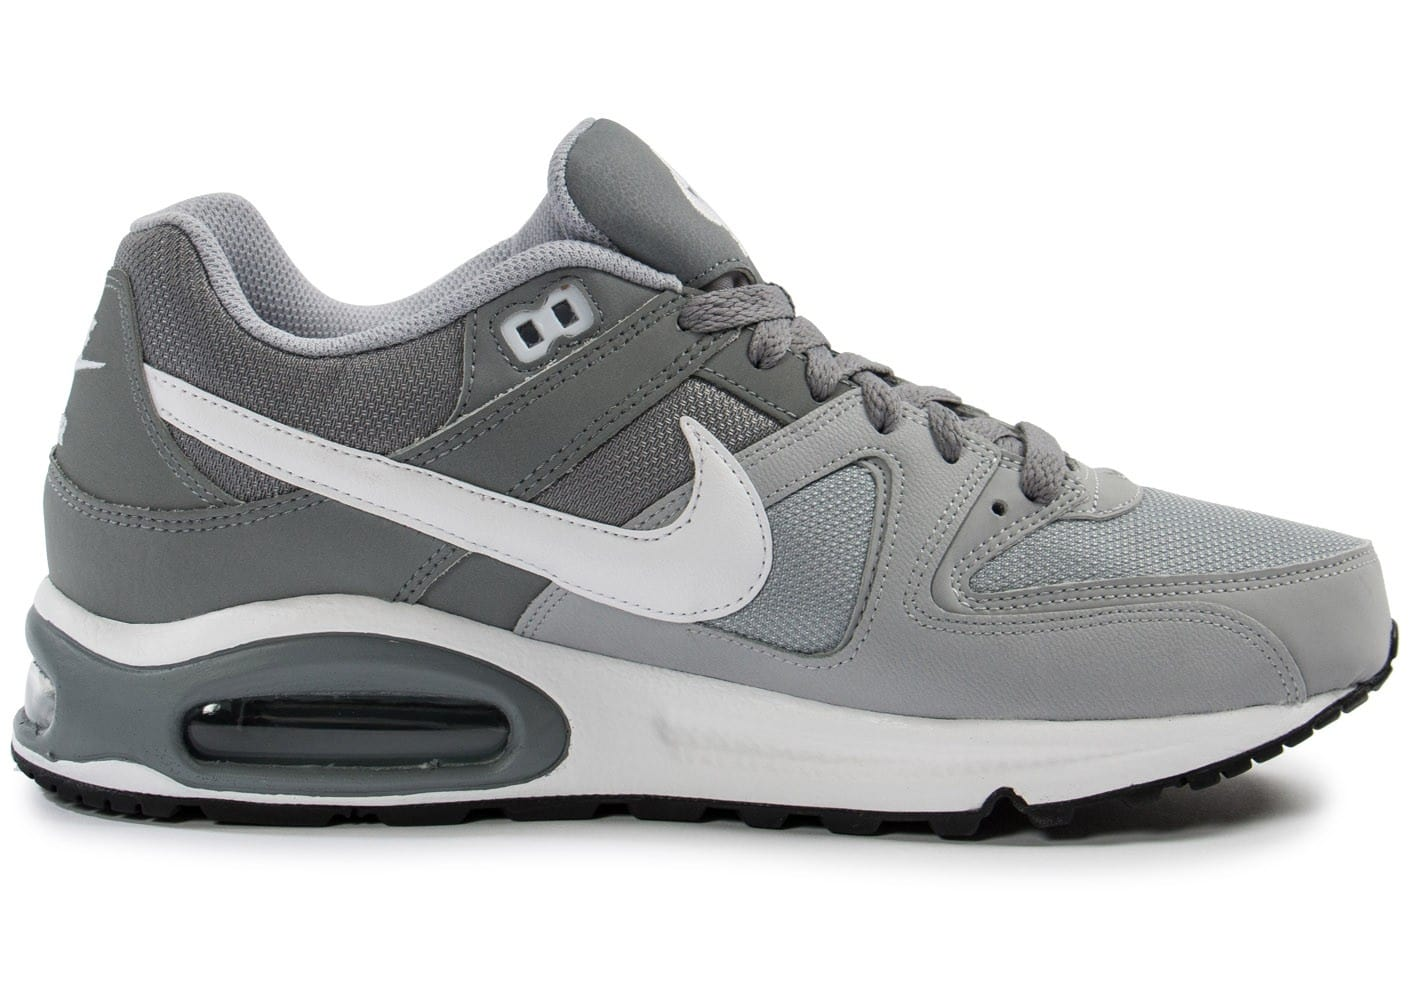 soldes nike air max command grise chaussures homme chausport. Black Bedroom Furniture Sets. Home Design Ideas